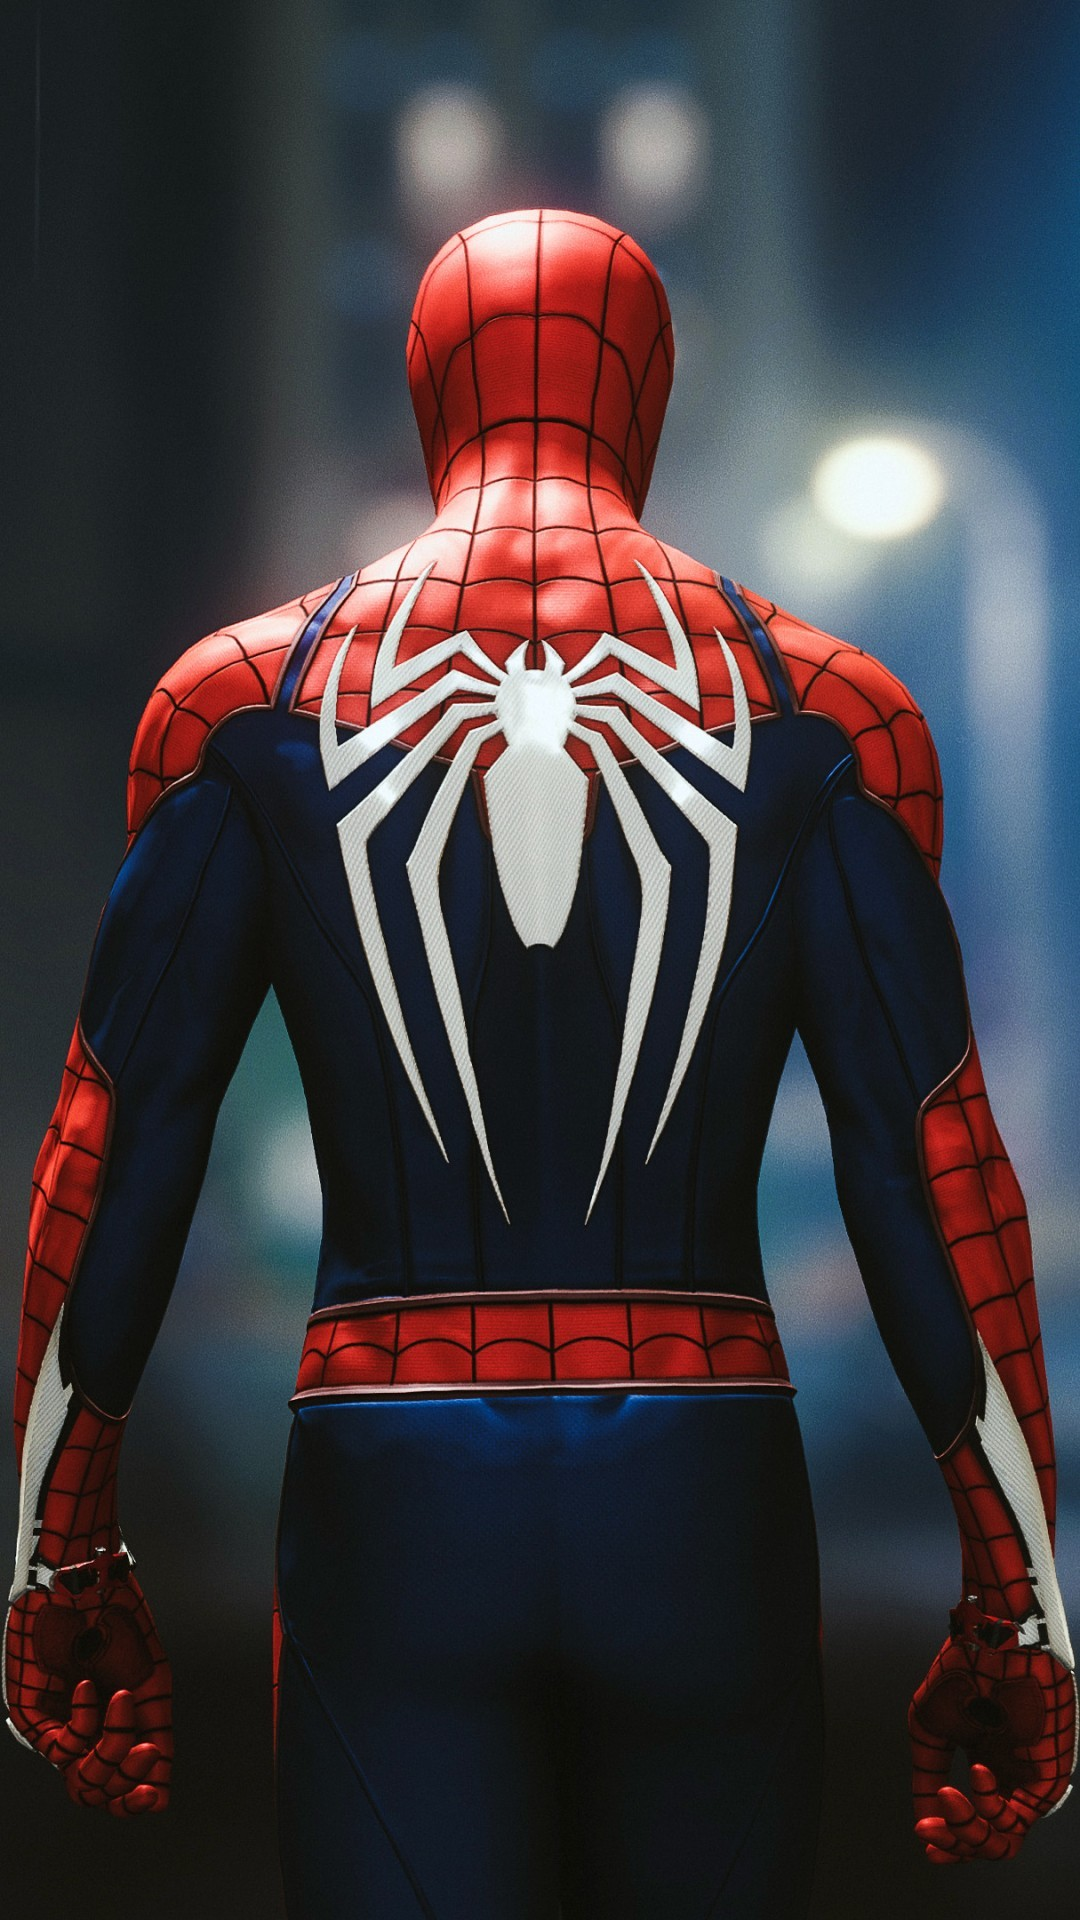 Spider-Man Wallpaper - KoLPaPer - Awesome Free HD Wallpapers